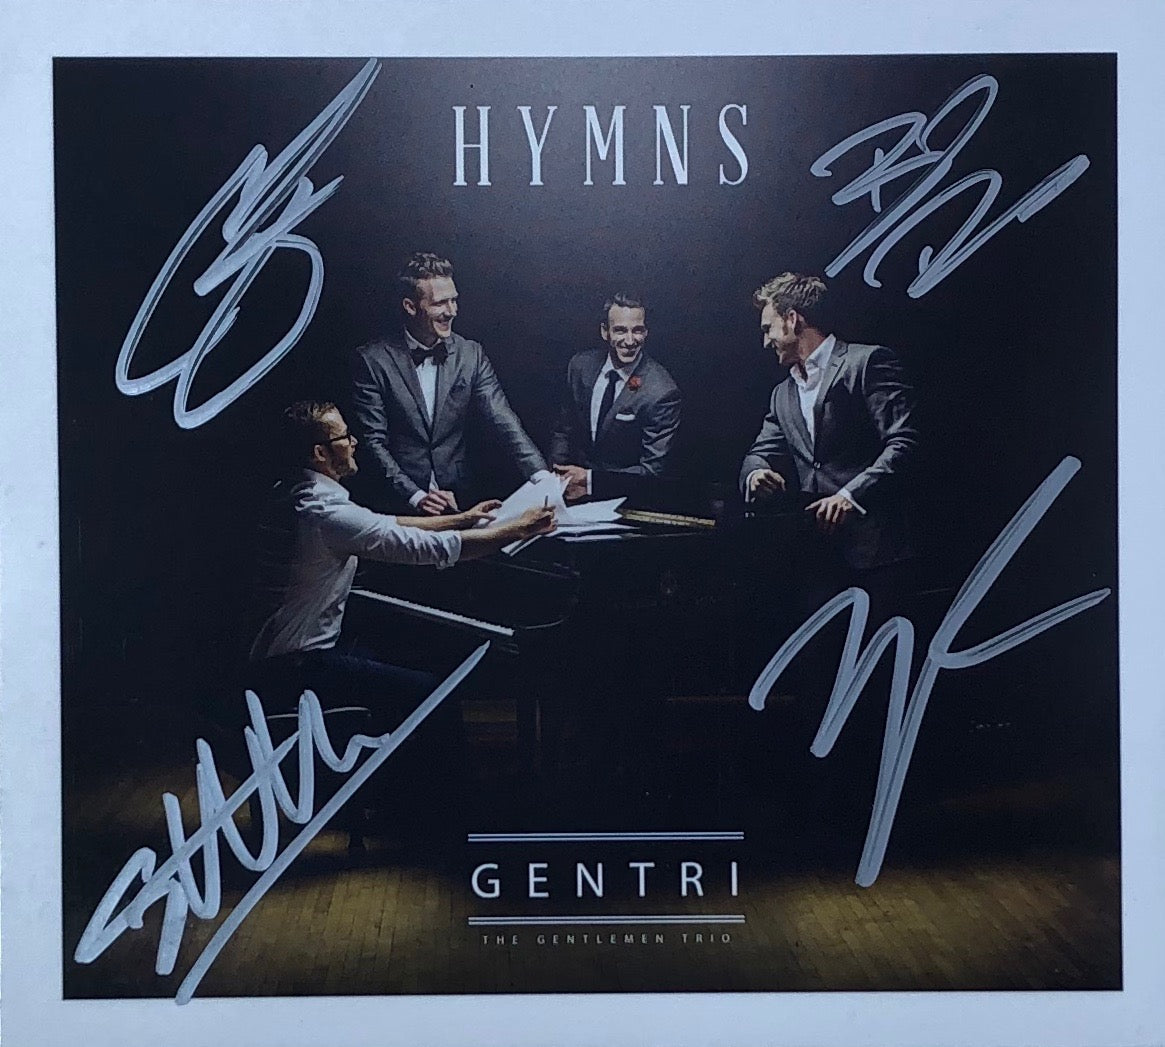 Hymns CD - Autographed Limited Edition